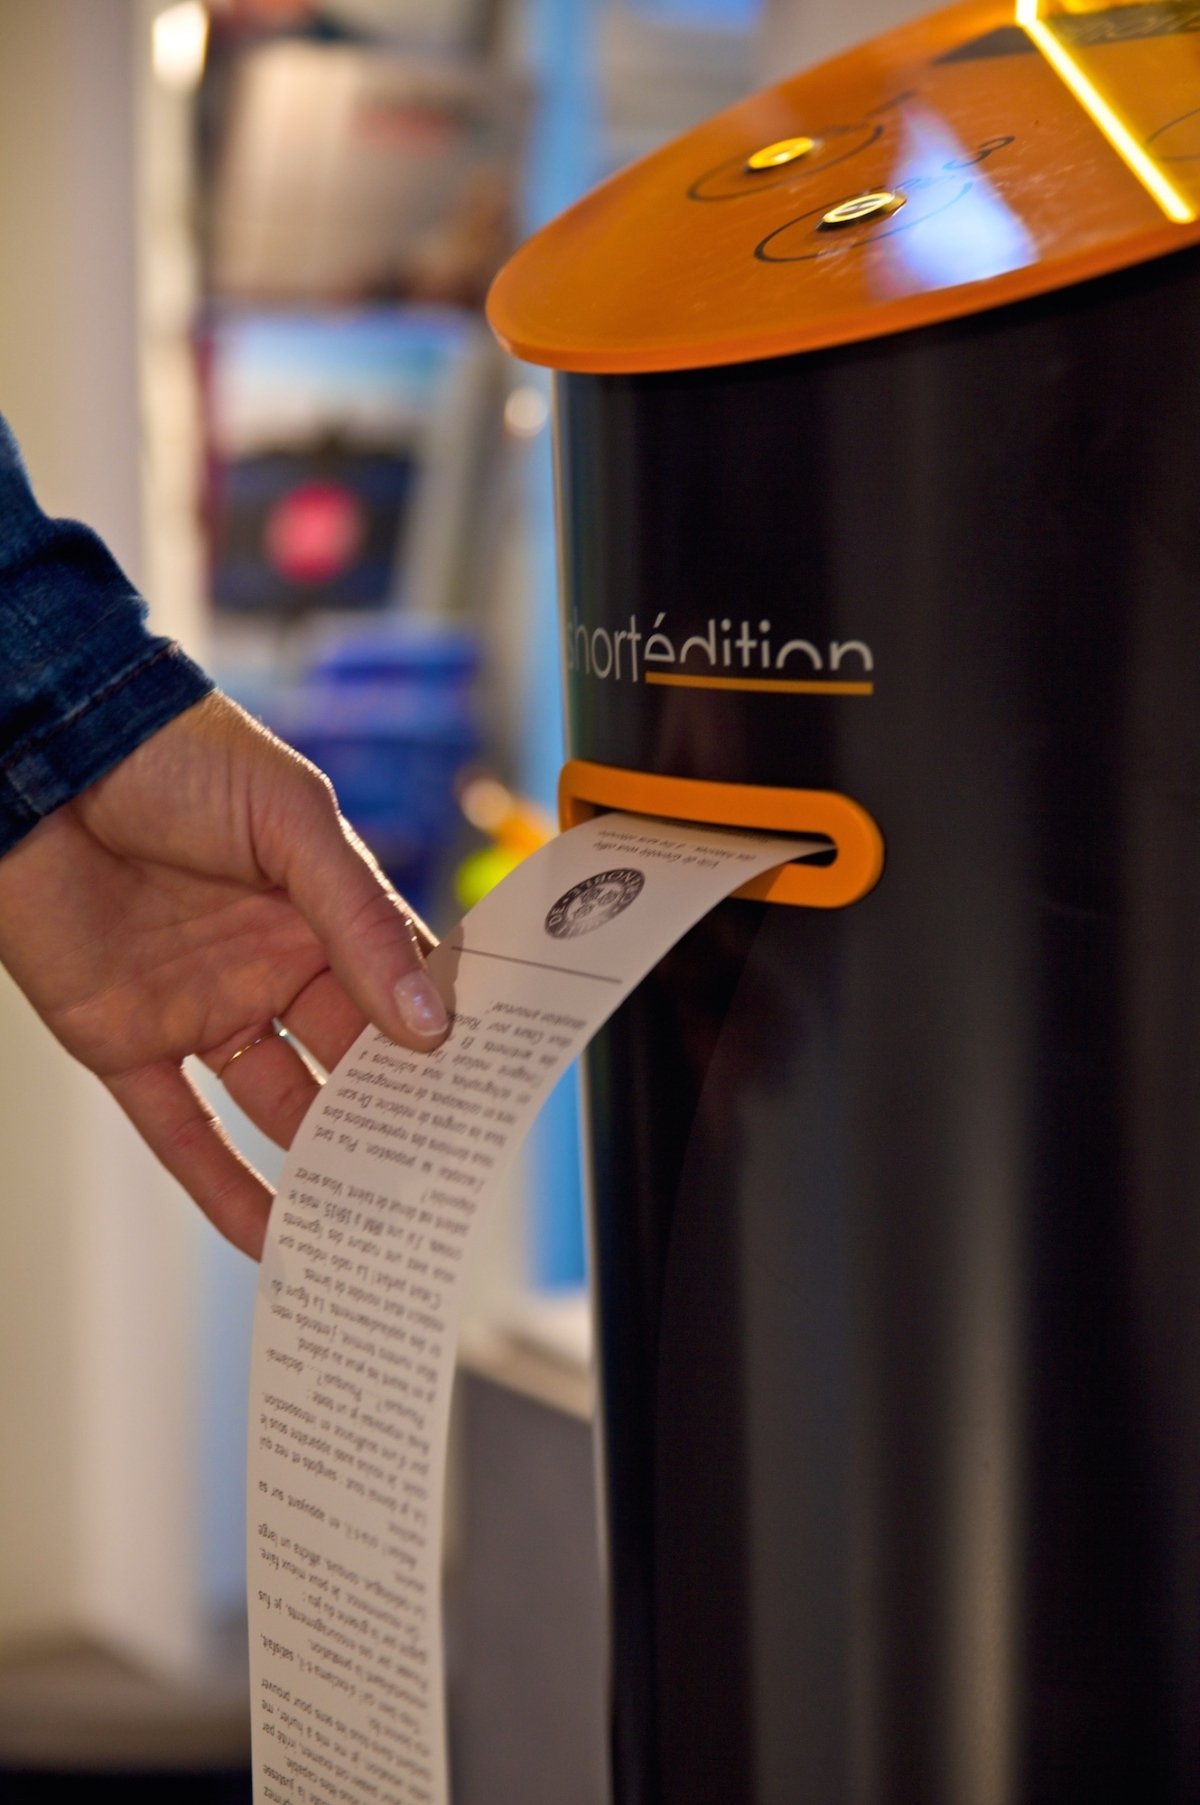 GOOD.IS: Instead of Snacks, This Vending Machine Spits Out Short Stories